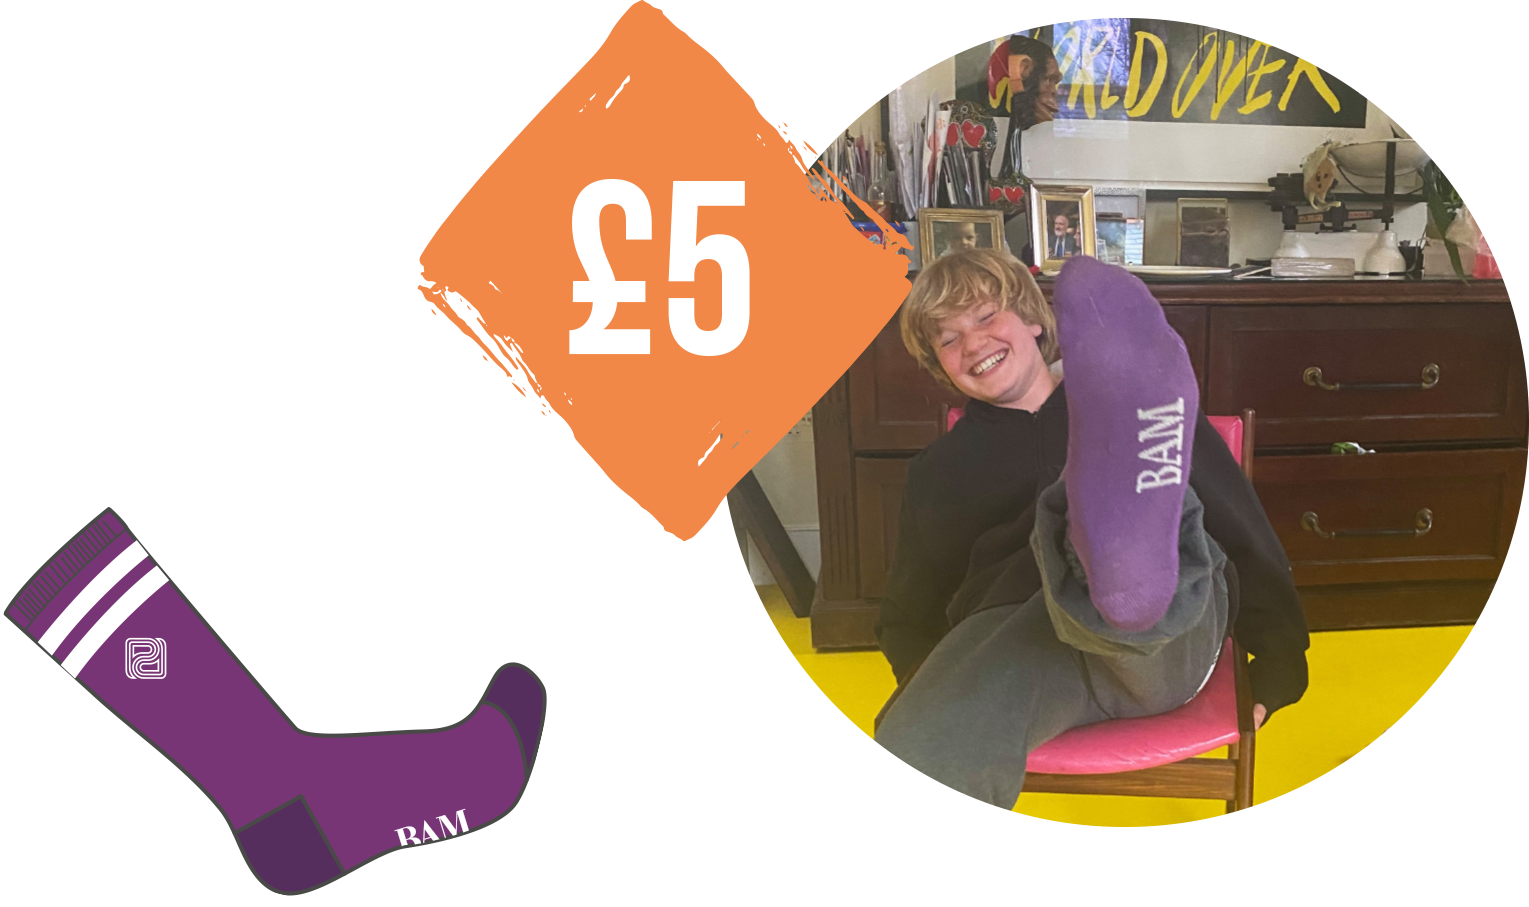 A product shot of the purple socks then the text reads. How much is a pair of socks? £5.